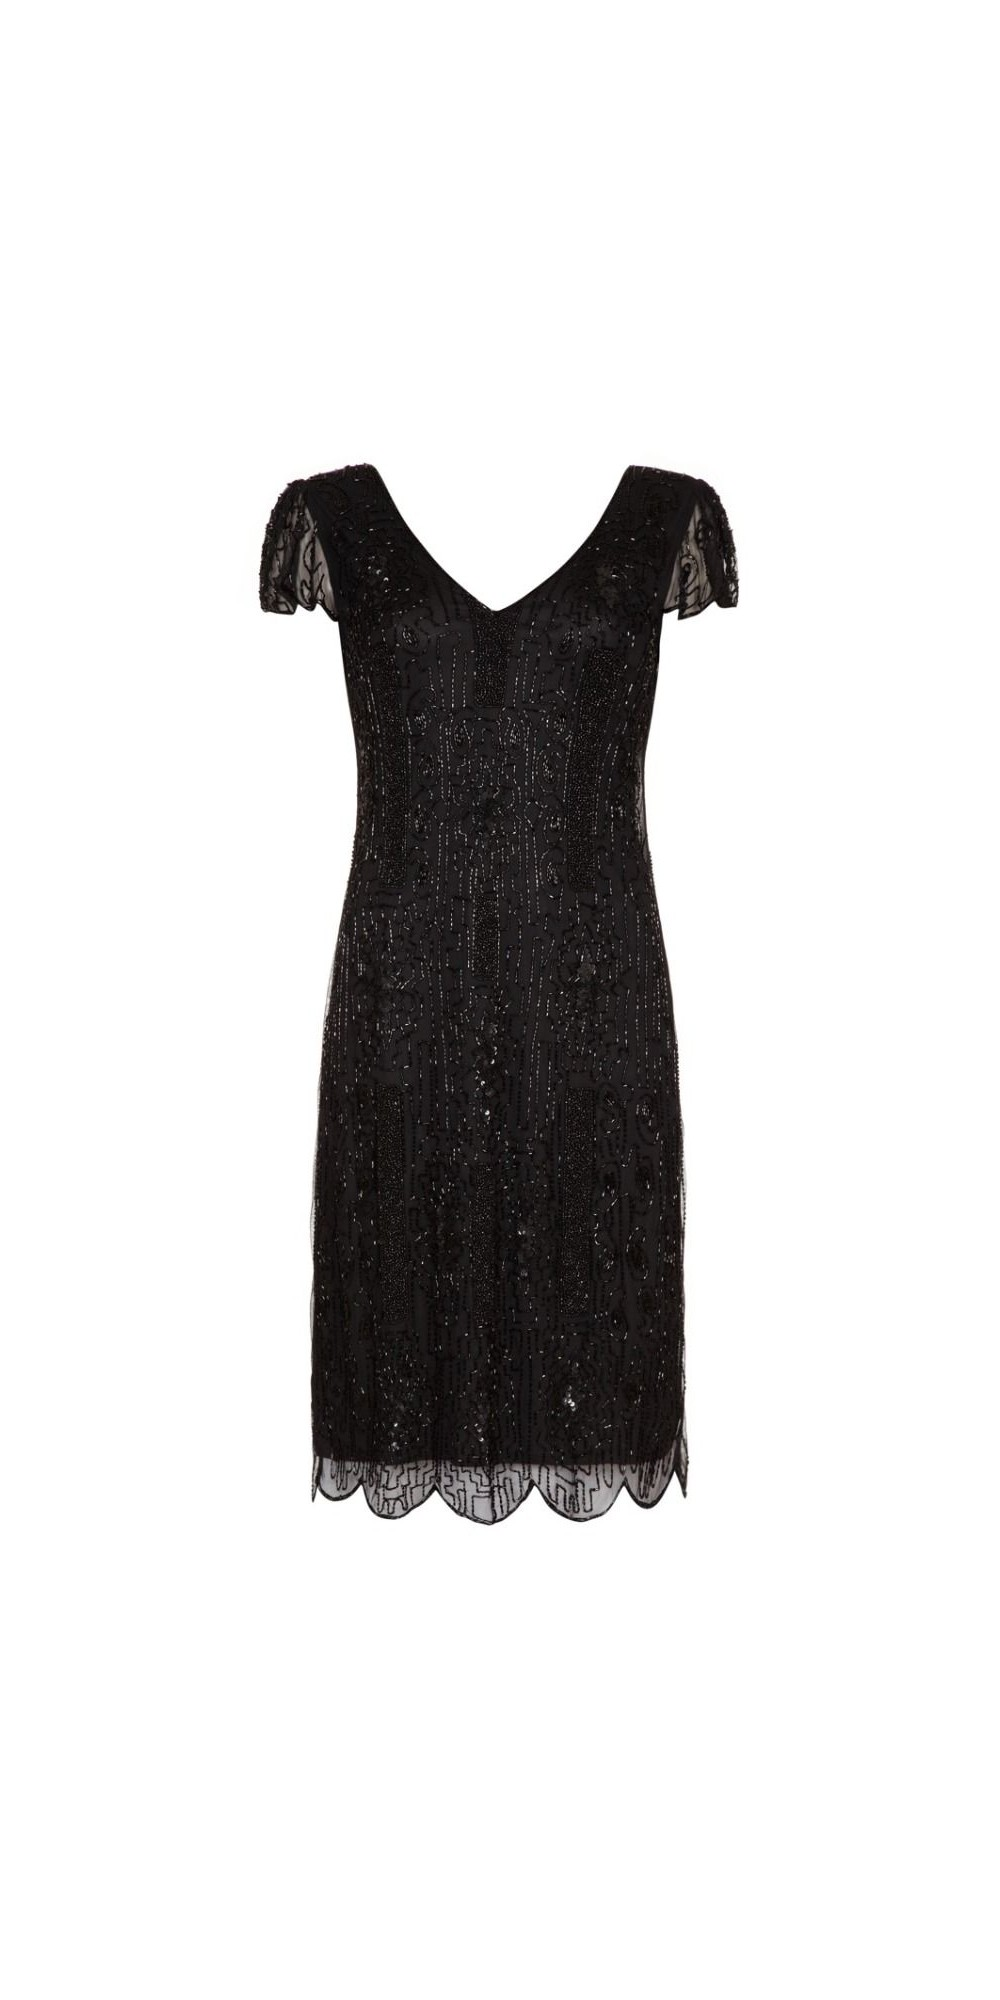 bd3bf643007 1920 Style Beaded Dress in Black